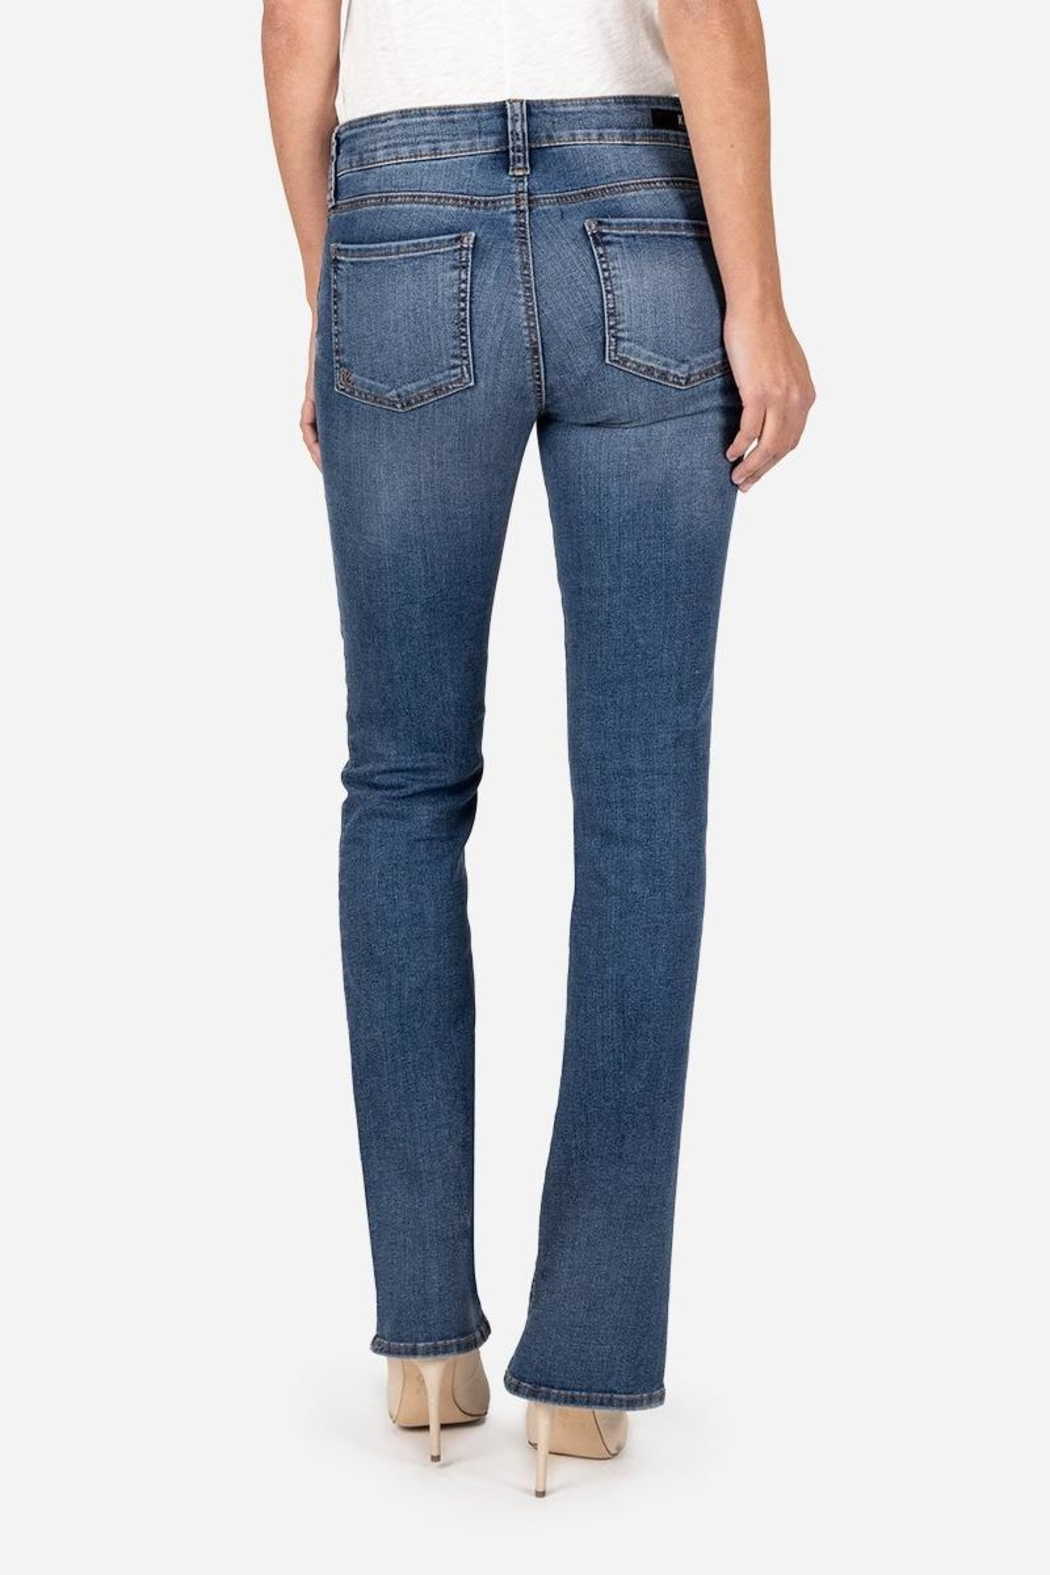 Kut from the Kloth Natalie Bootcut Jeans - Front Full Image